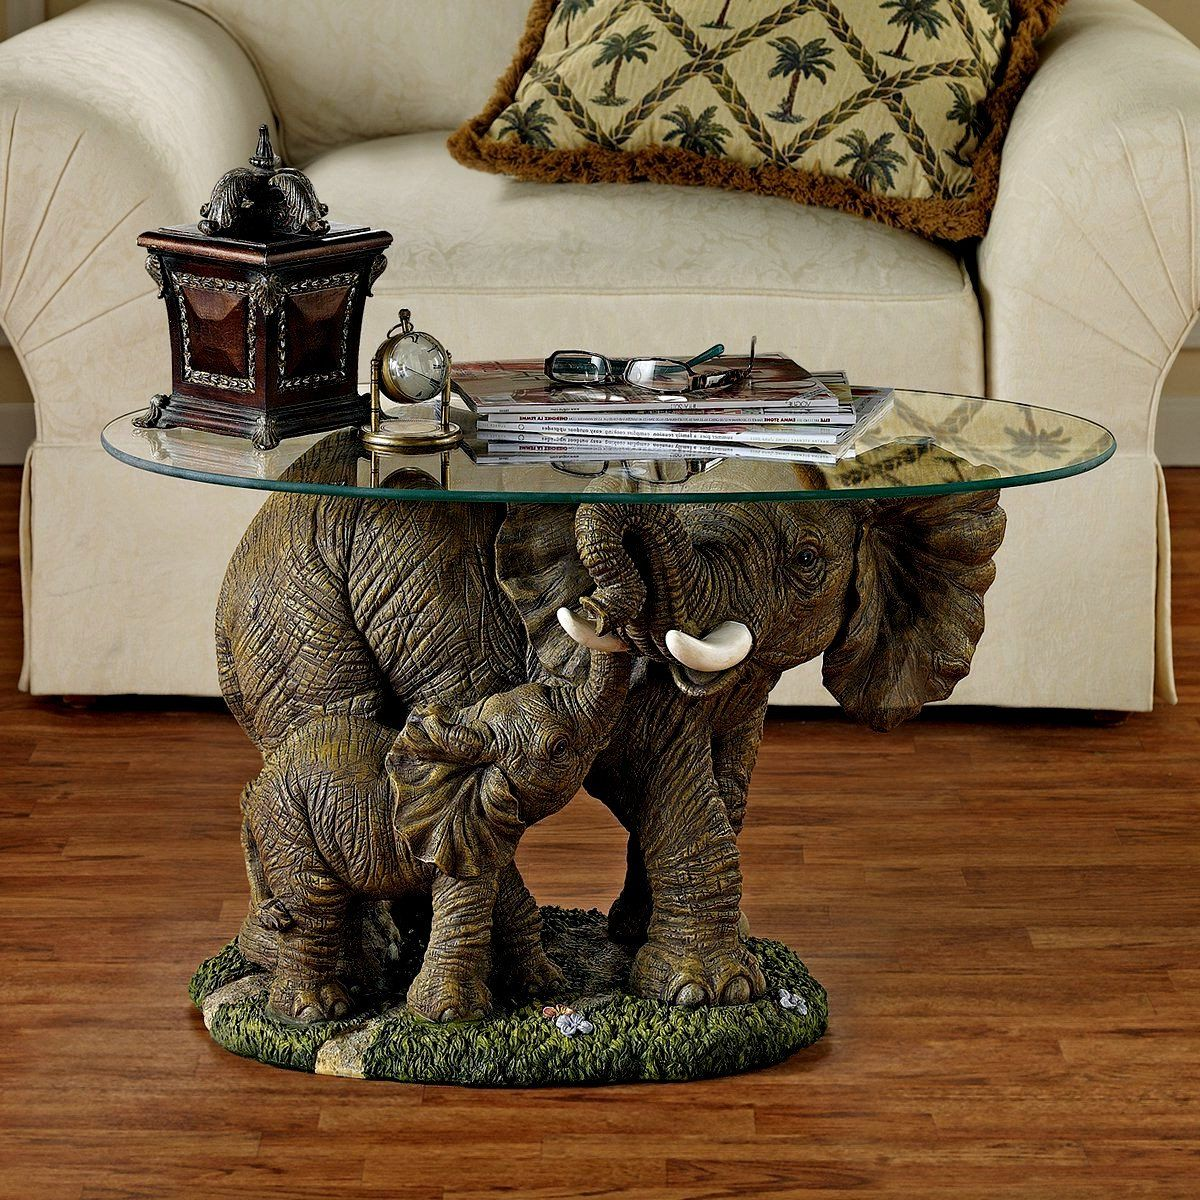 Elephant Coffee Table Is Ideal For Your Office Home And Adds To Your Room S Style Due To Its Exquisite Un Elephant Decor Elephant Home Decor Design Toscano Living room table elephant